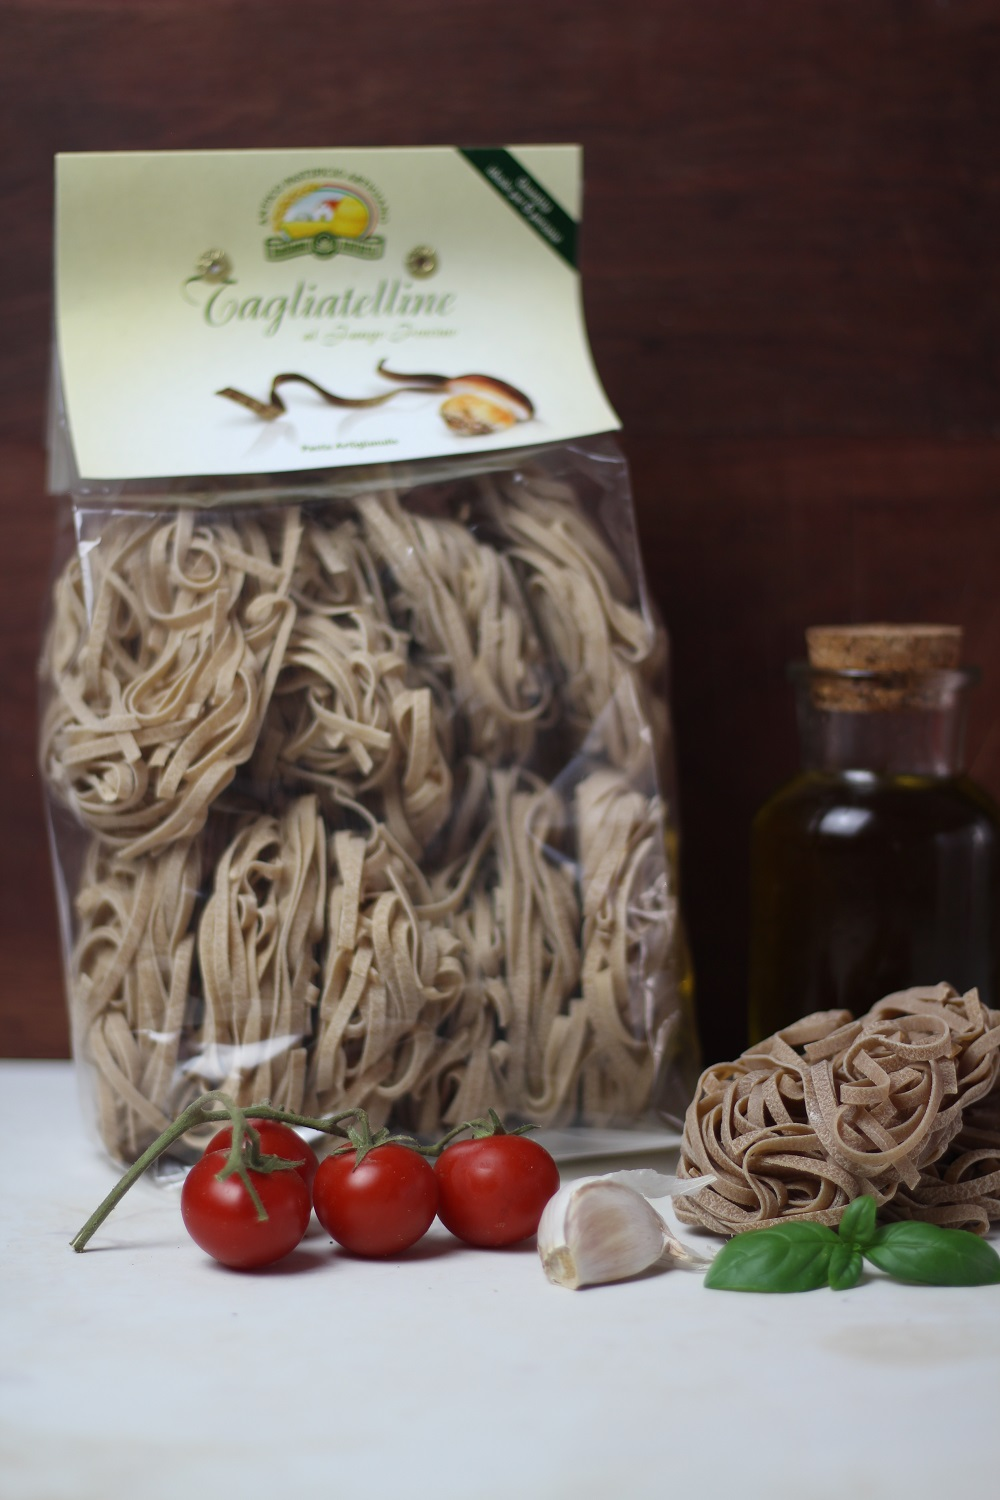 Tagliatelline with Porcini Mushrooms